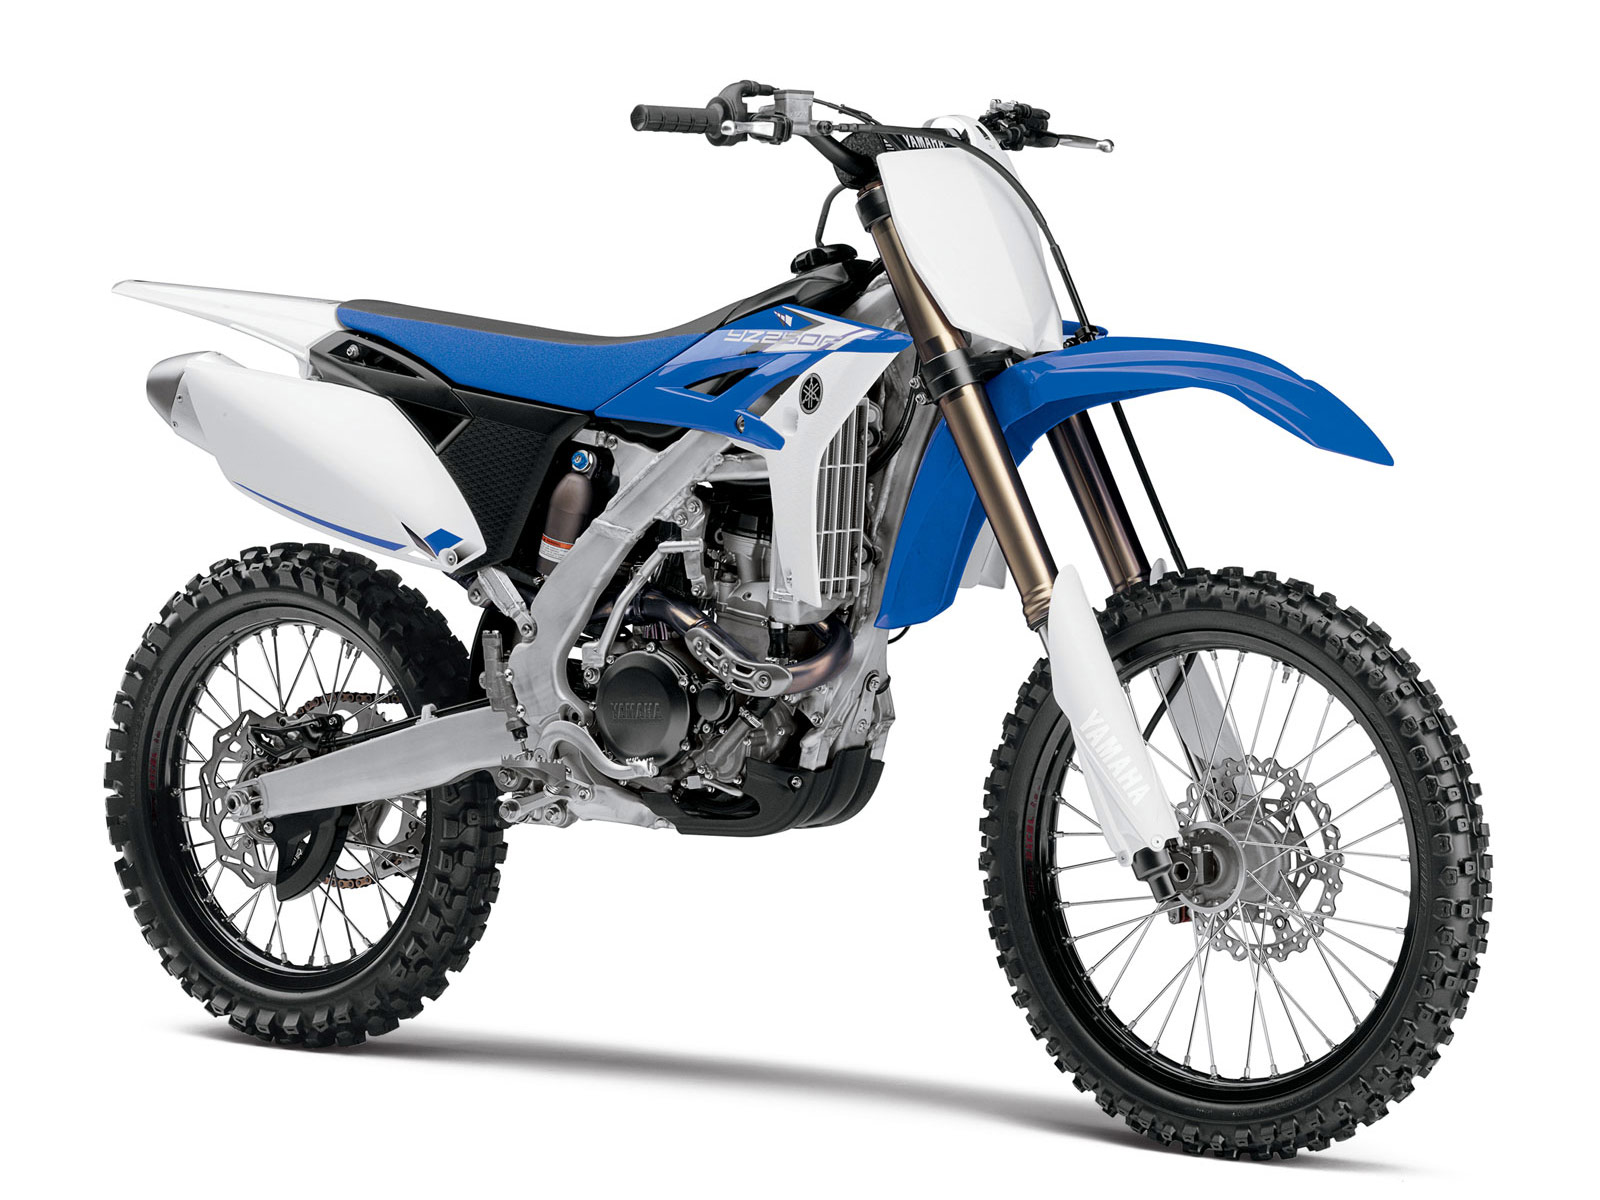 Yamaha 250 4 stroke dirt bike wallpaper for desktop for Yamaha 250 four stroke